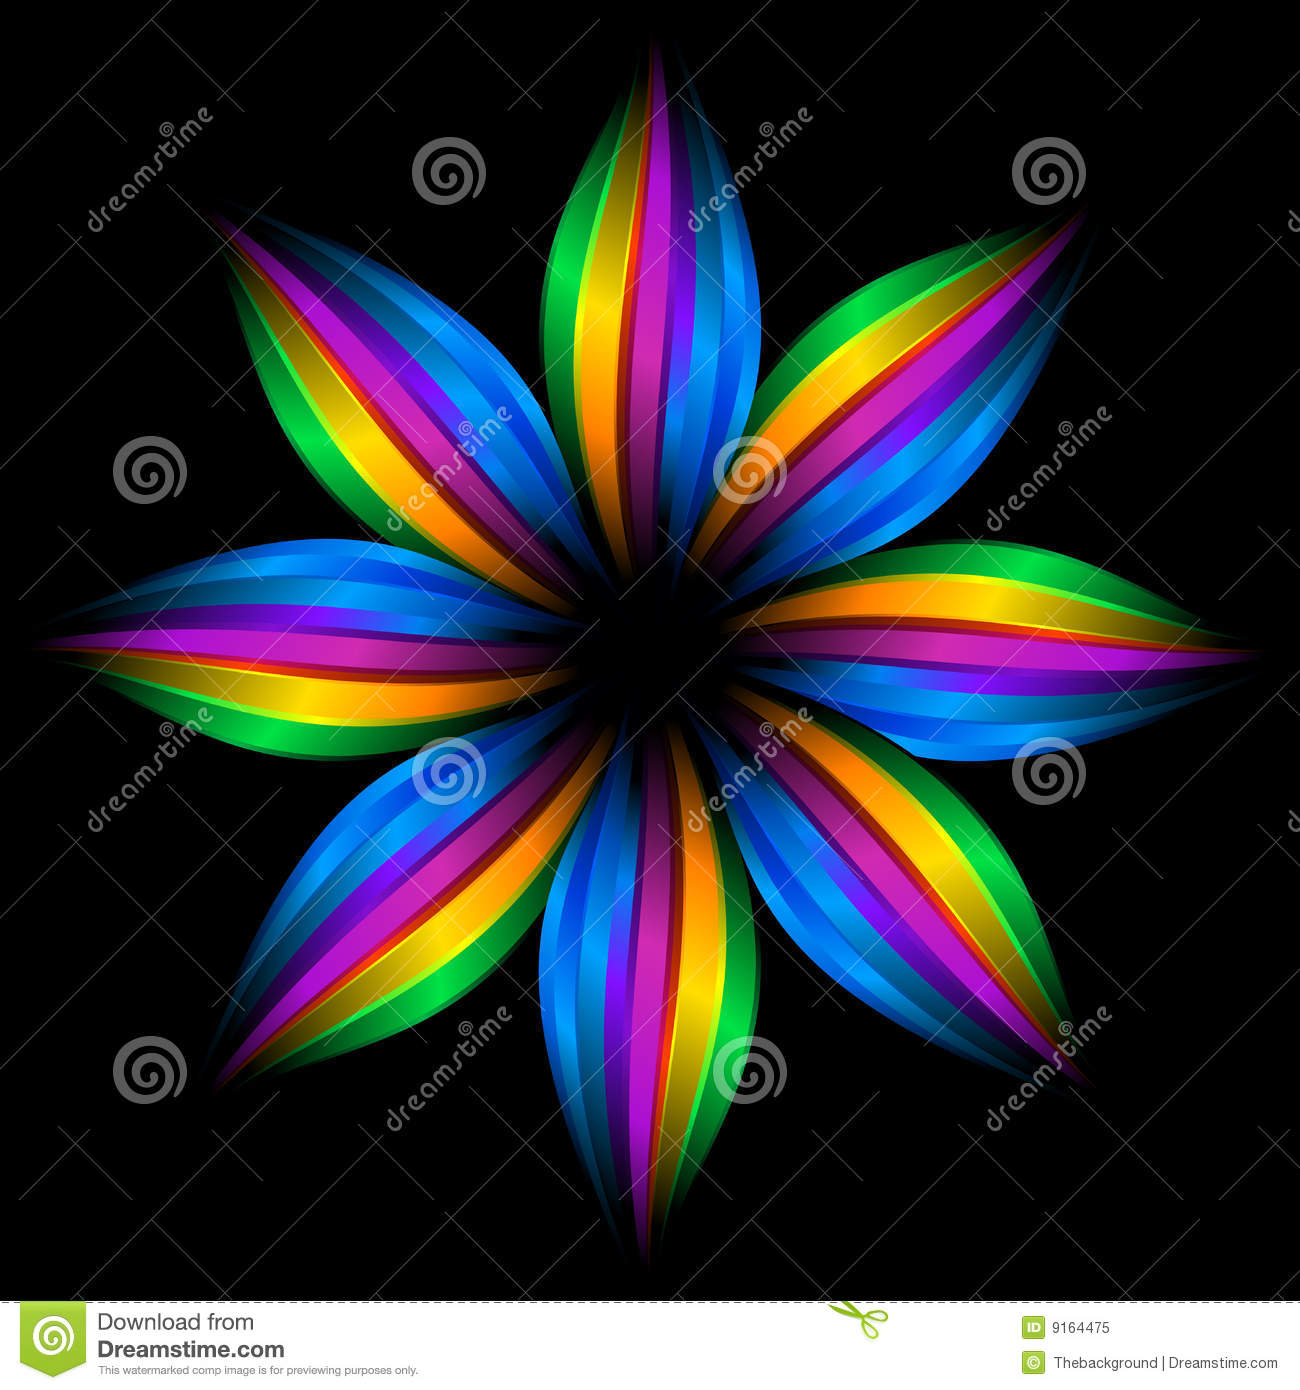 Abstract Rainbow Flower Royalty Free Stock Photo - Image: 9164475